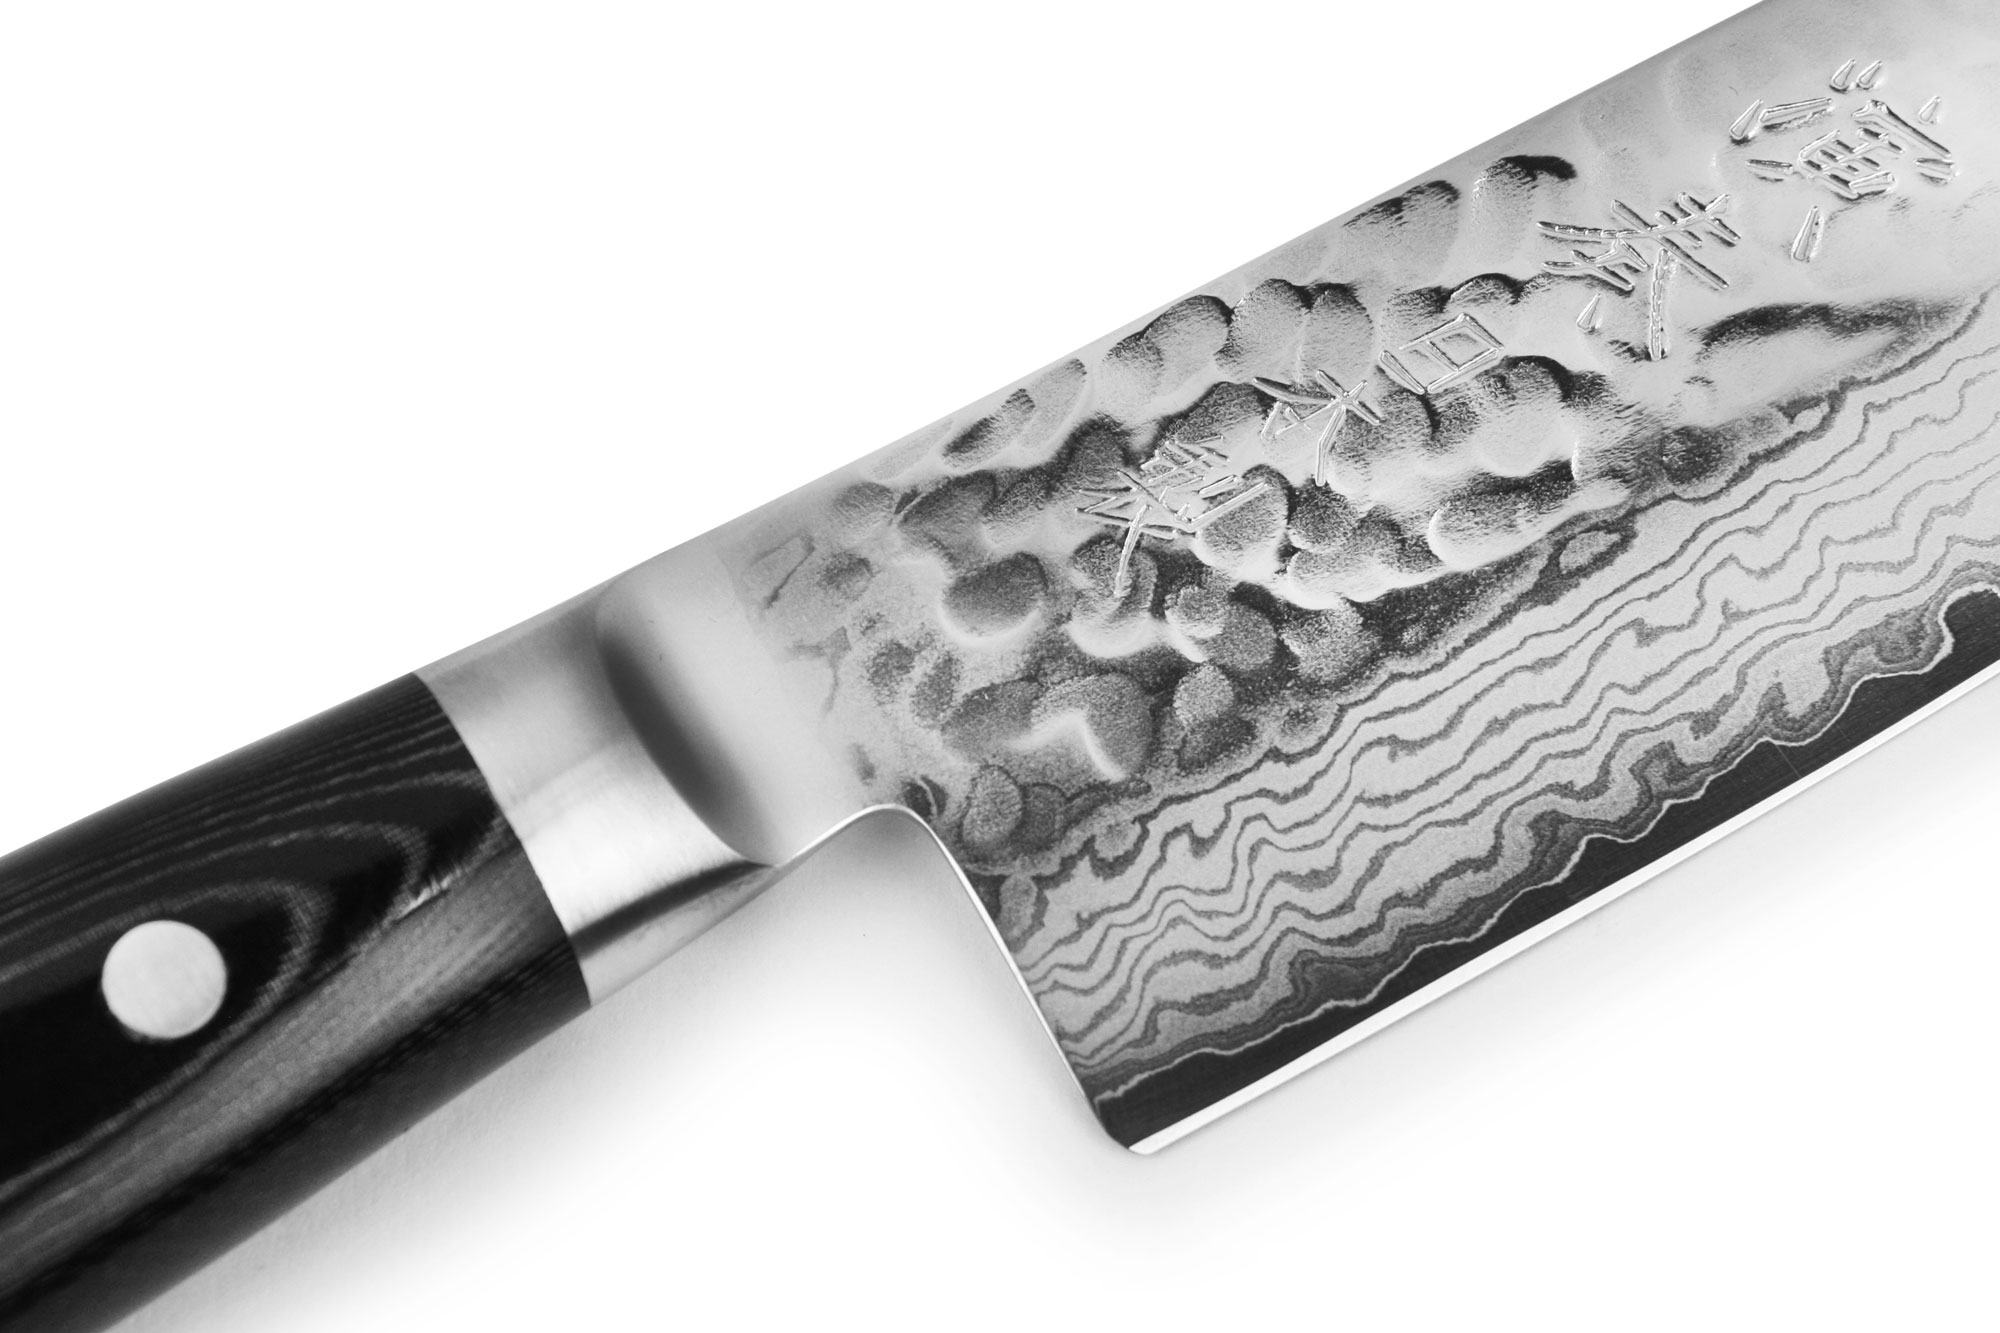 Enso HD Chefu0027s Knife 8 Inch   Japanese Kitchen Knives | Cutlery And More